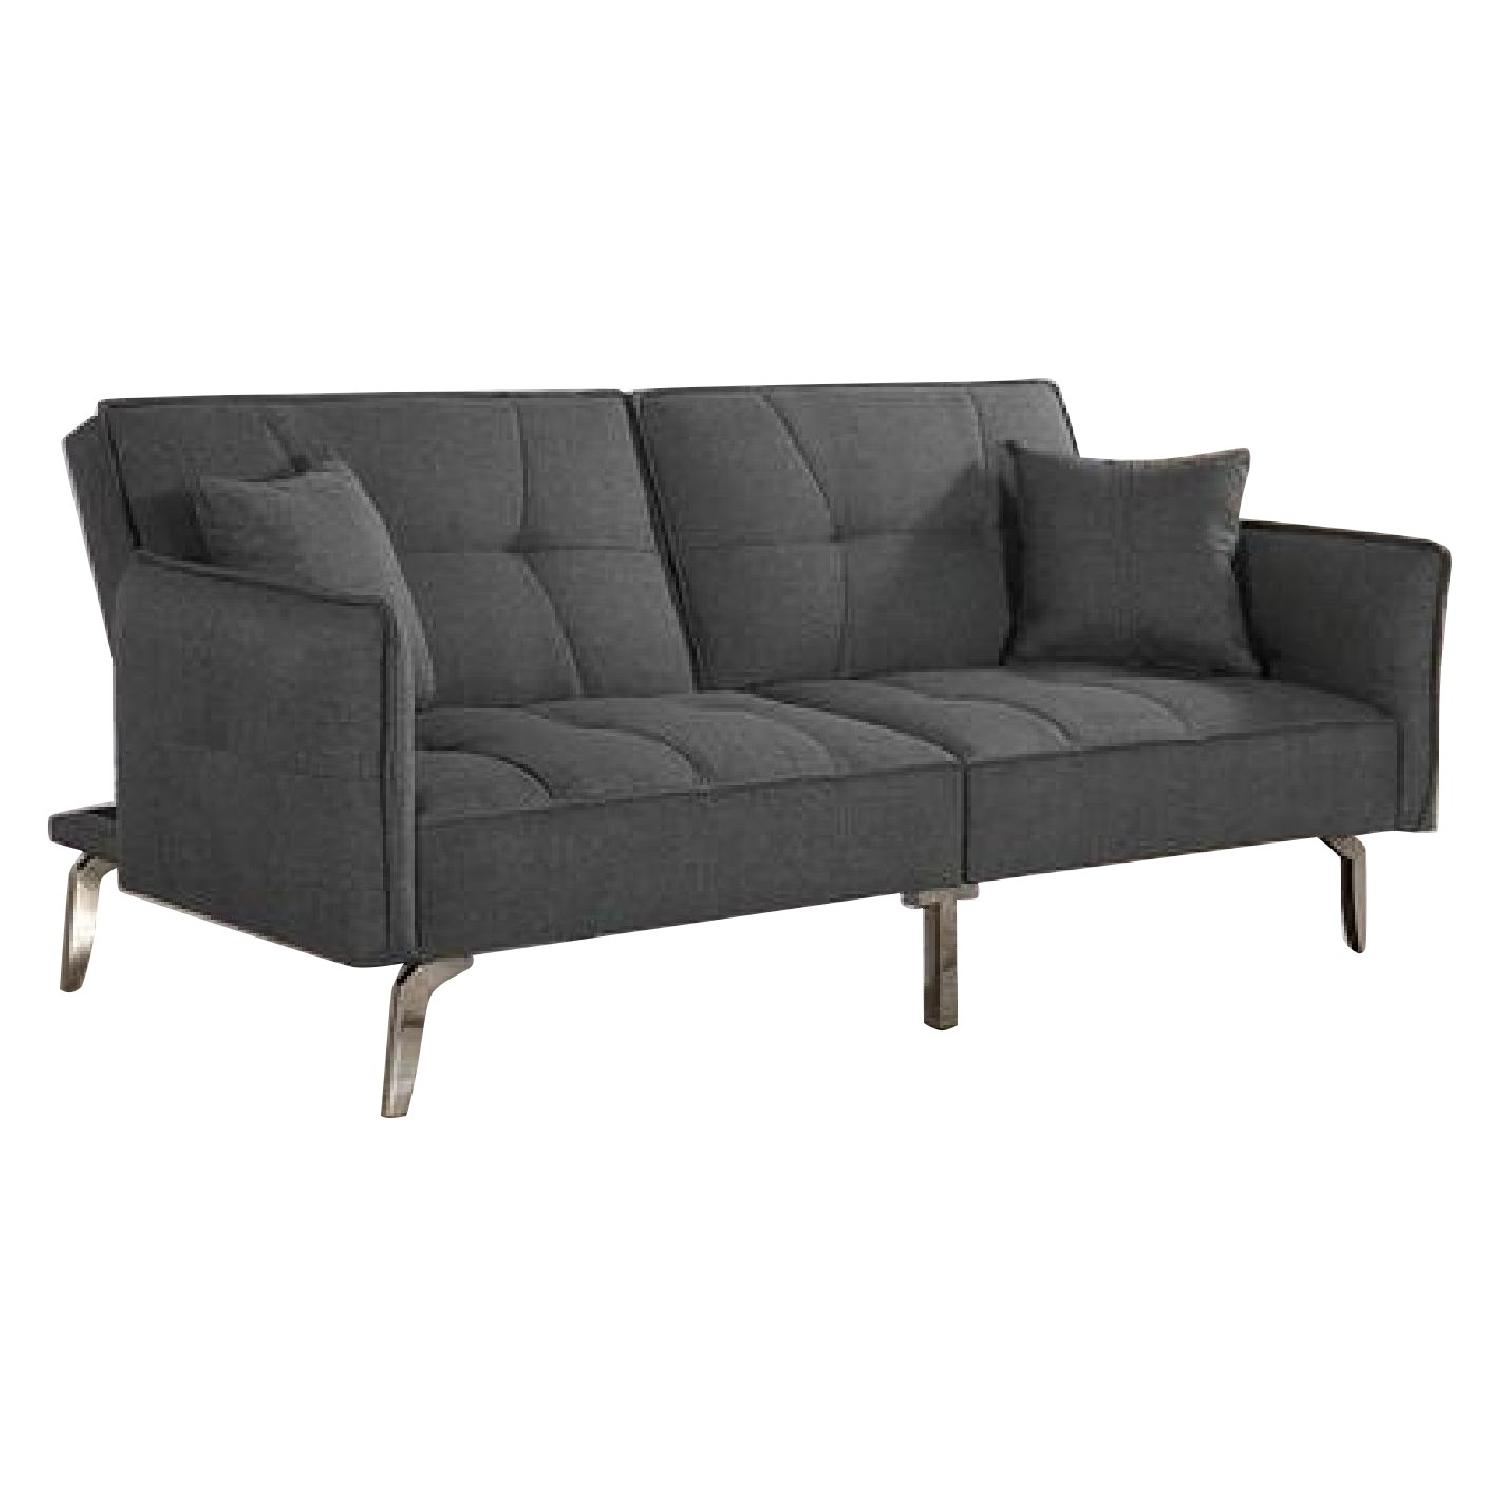 Dark Grey Fabric Tufted Sleeper Sofa